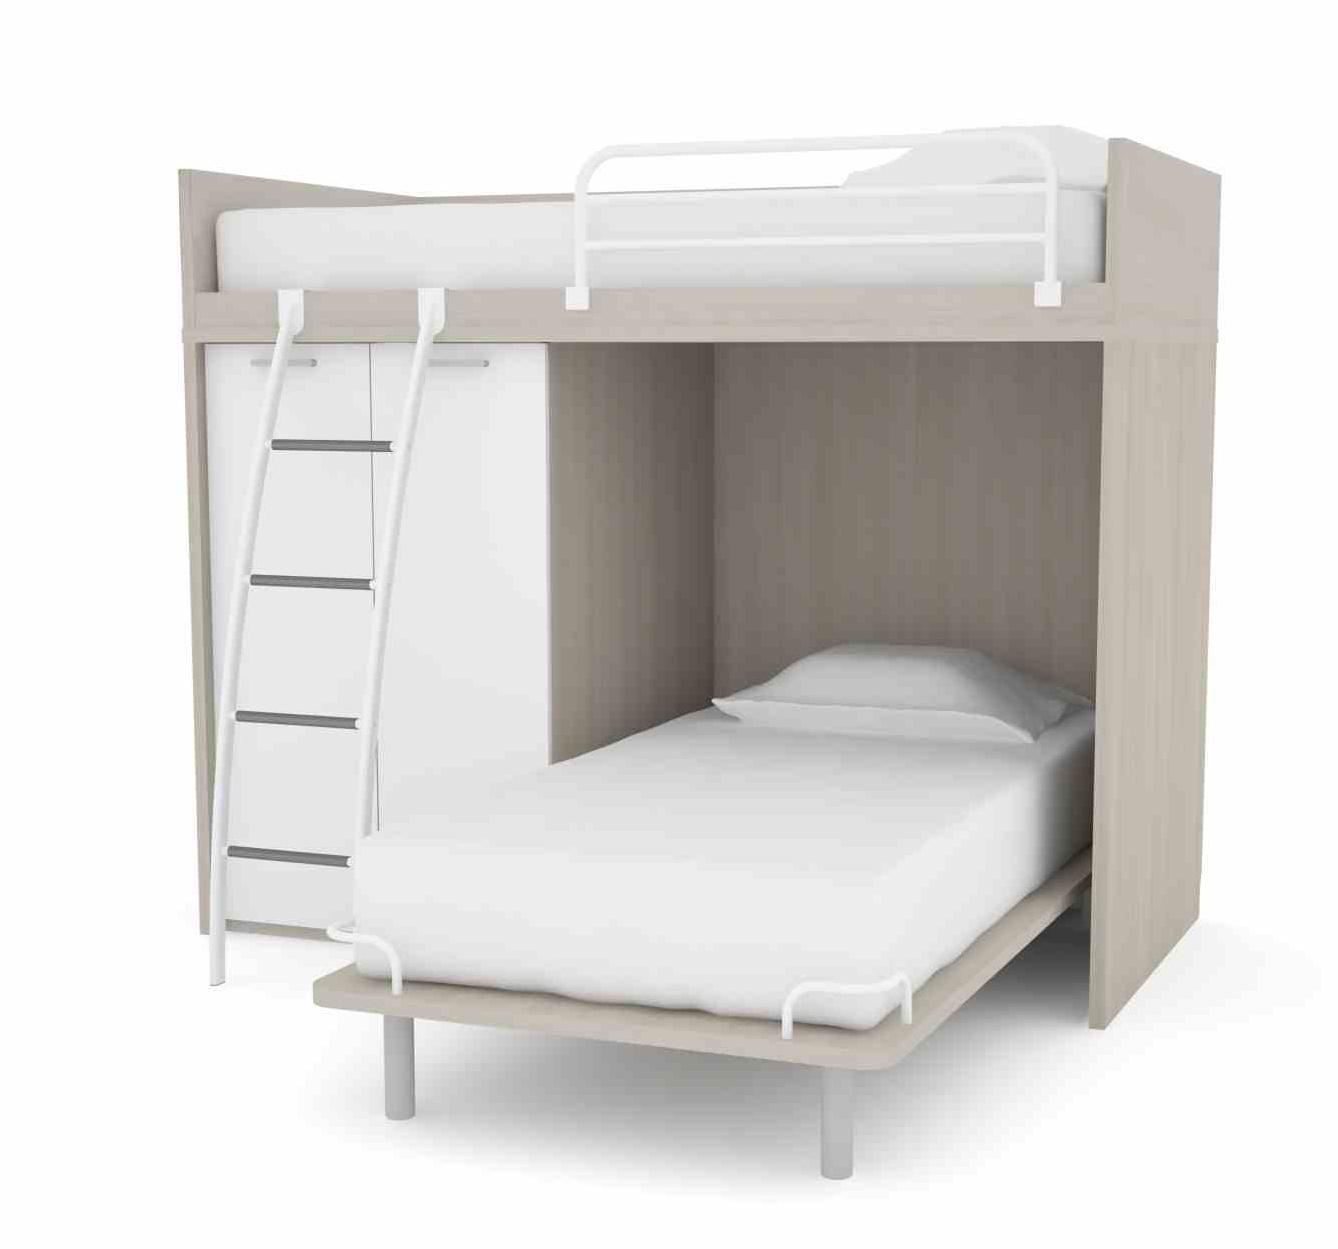 Image of: Modern L Shaped Bunk Beds For 3